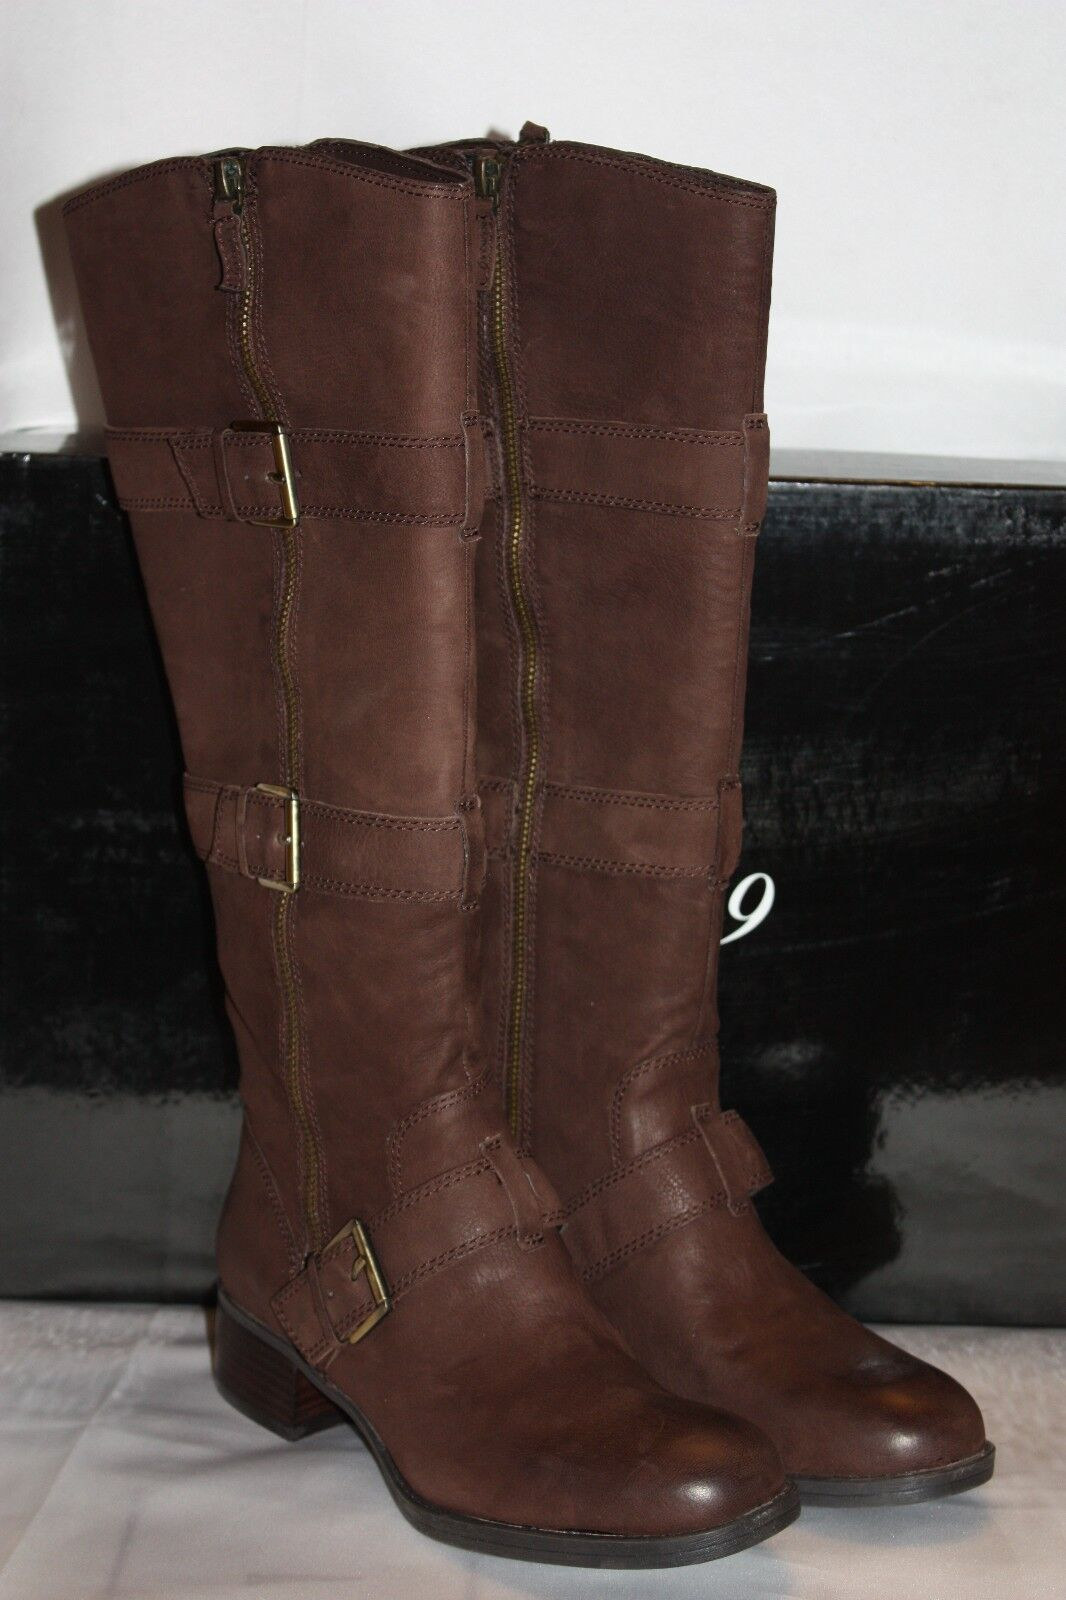 NEW  NIB  BOUTIQUE 9 Dark Brown Leather DACIA Tall Buckle Boots  275